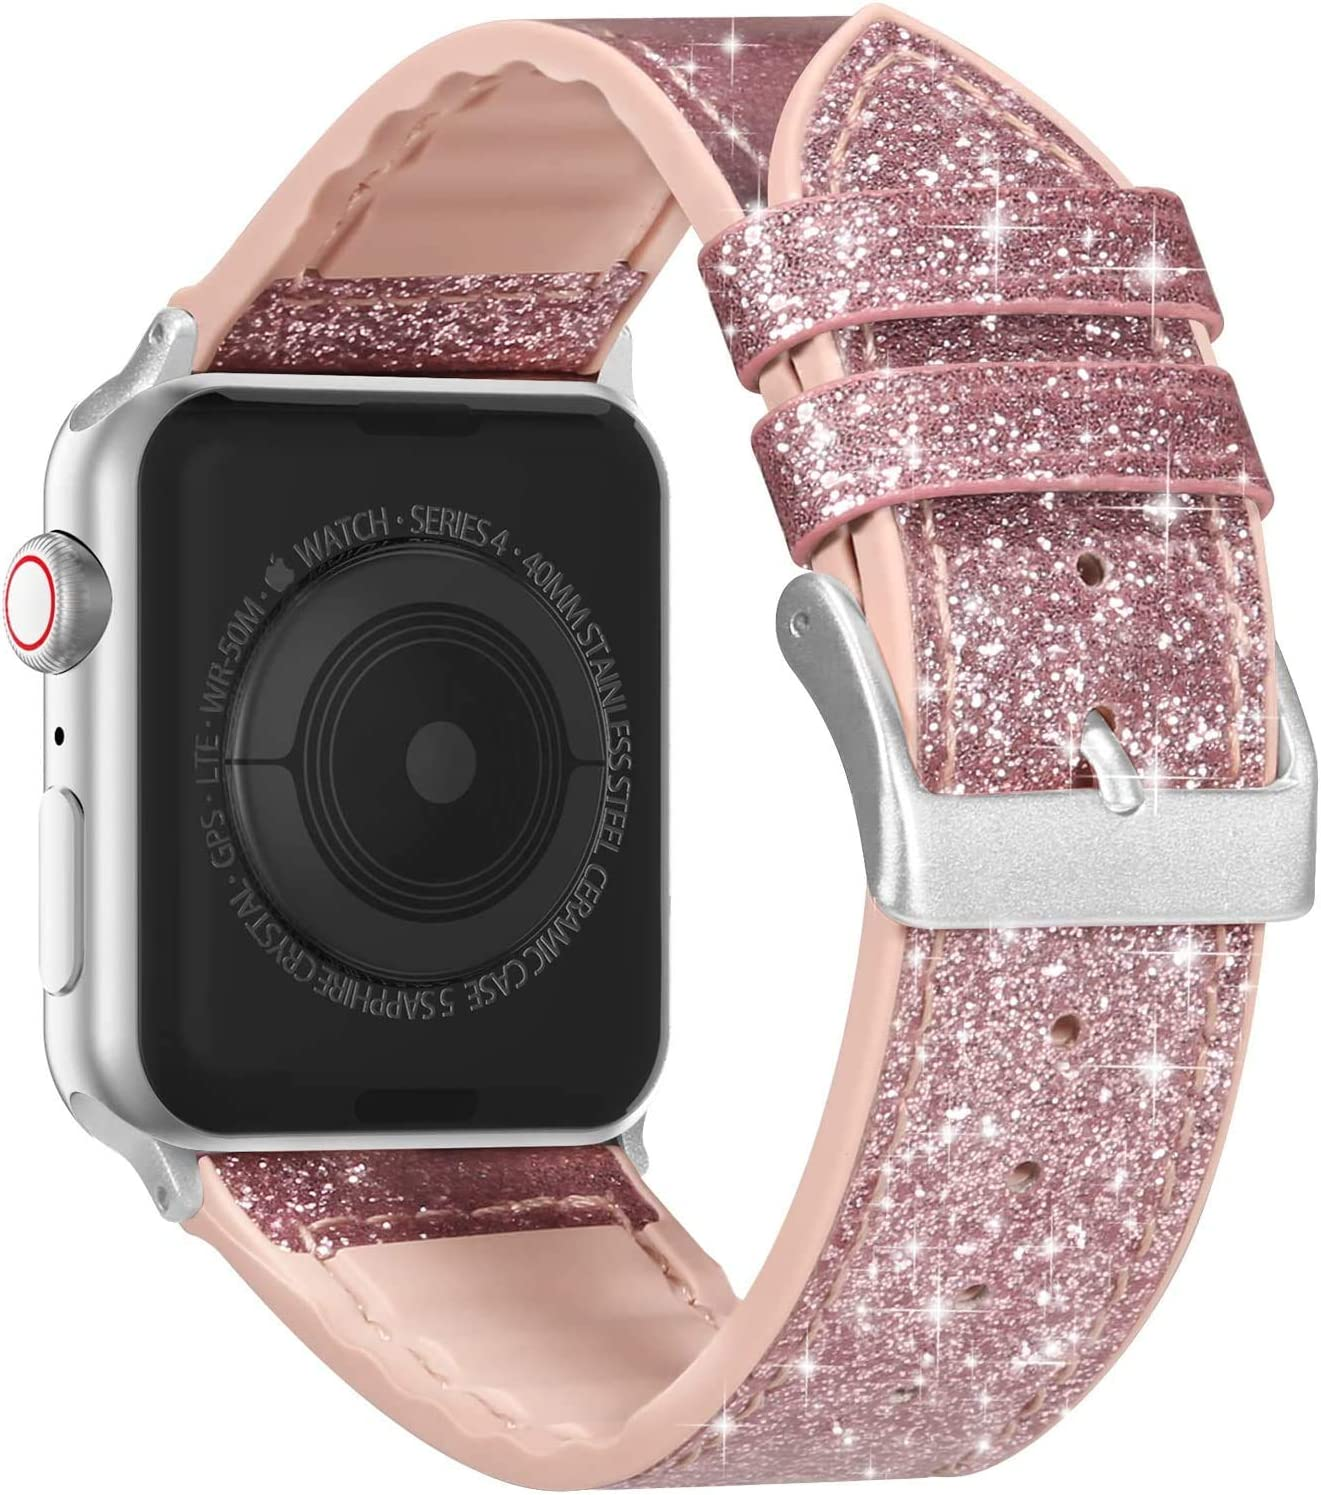 Compatible with Apple Watch Band 38mm 40mm 42mm 44mm, CTYBB Blingbling Sweatproof Genuine Leather and Silicone Band for iWatch SE Series 6 5 4 3 2 1, (Rose Gold/Silver, 38mm 40mm)